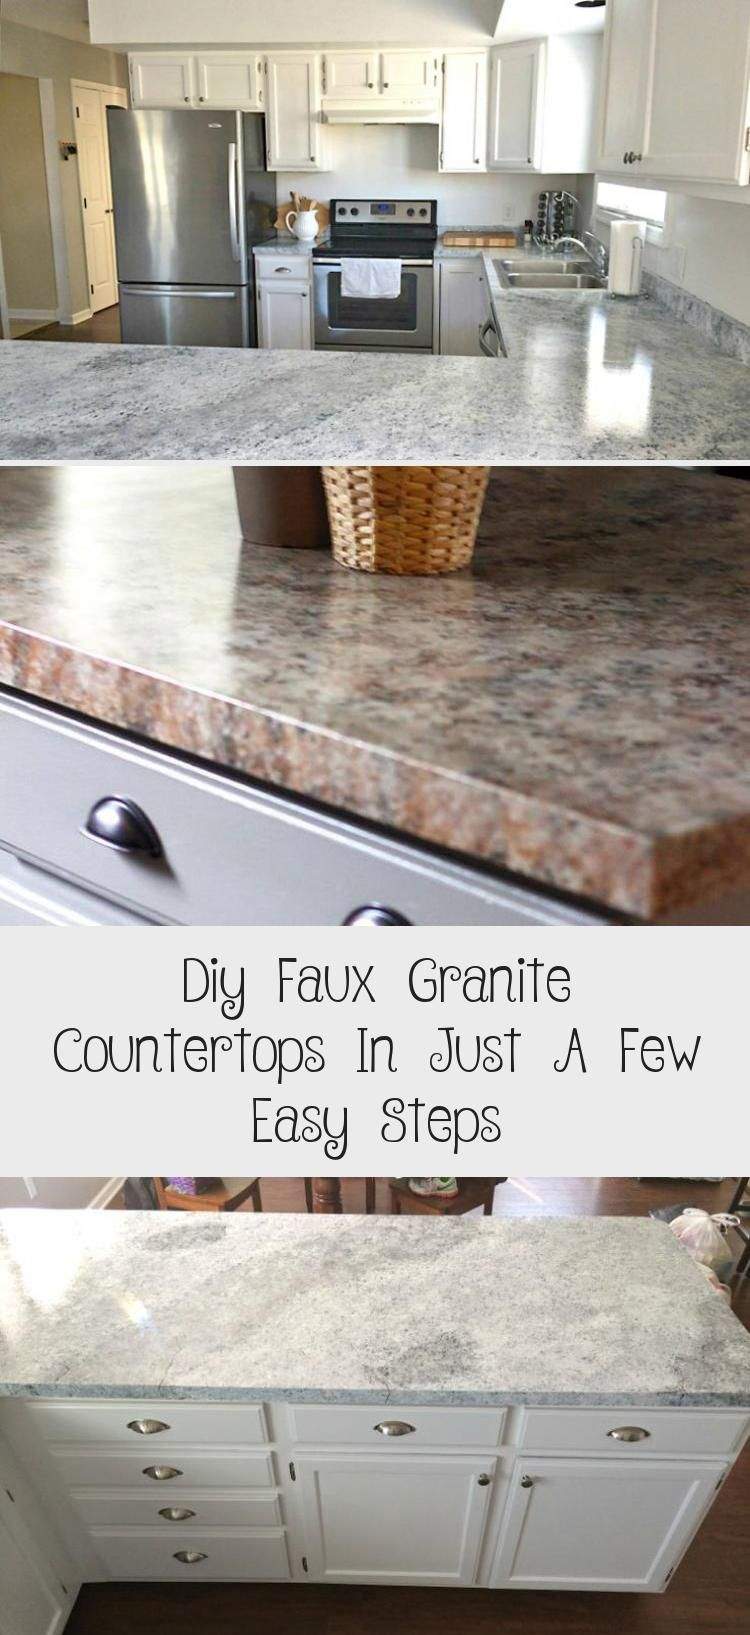 Diy Faux Granite Countertops In Just A Few Easy Steps Faux